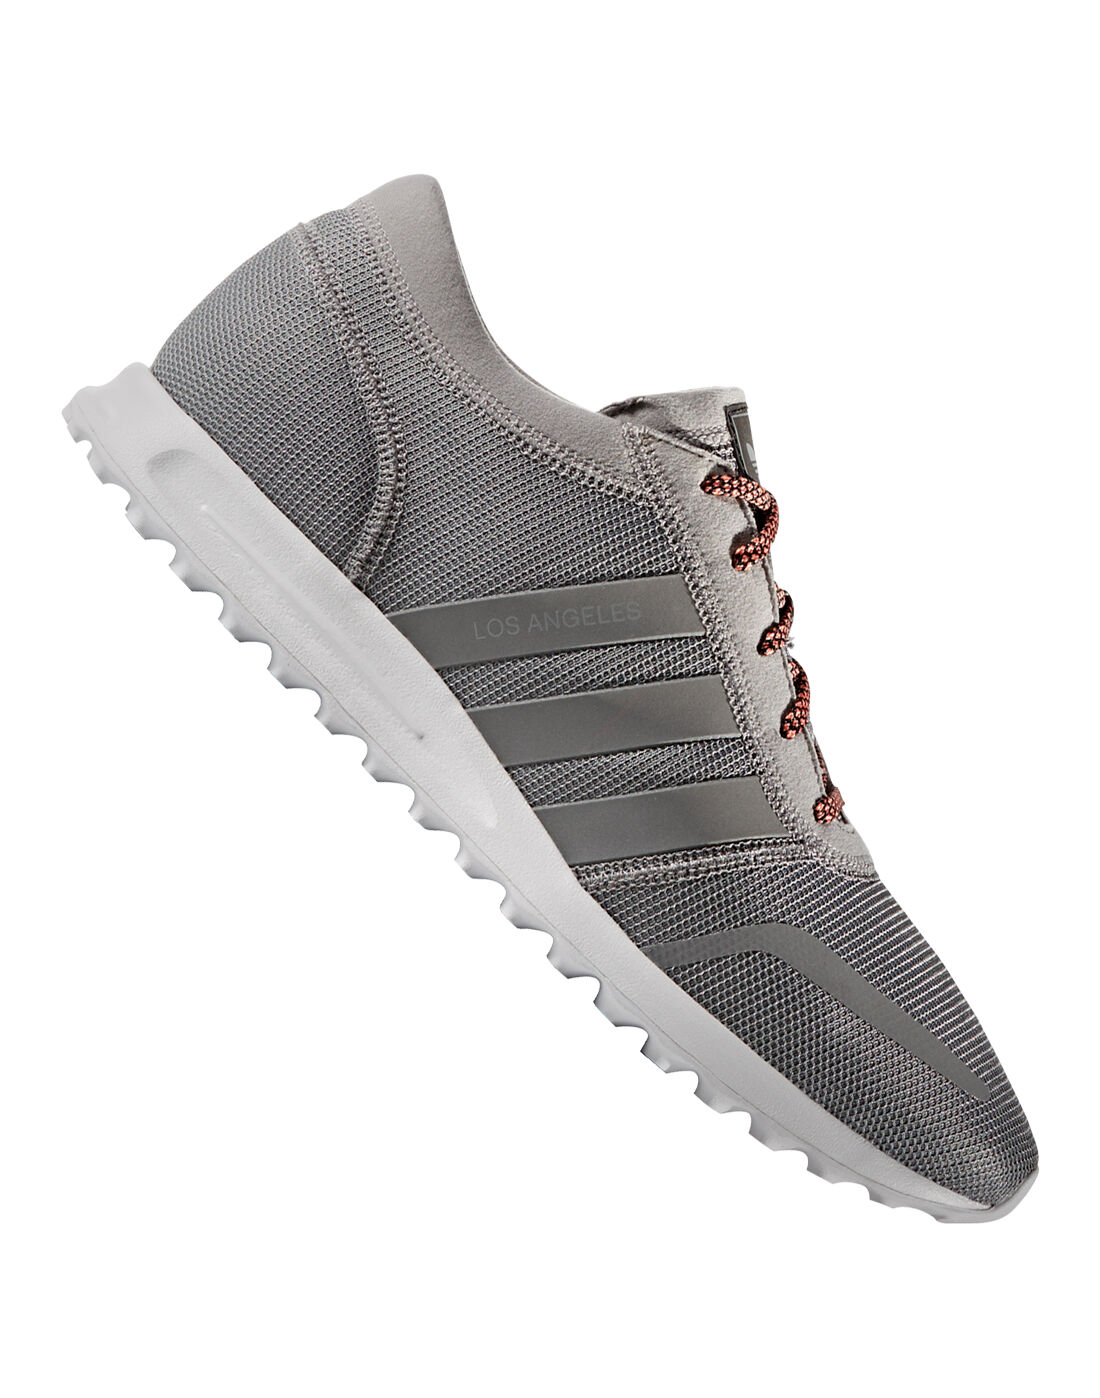 adidas Originals Mens Los Angeles | Life Style Sports